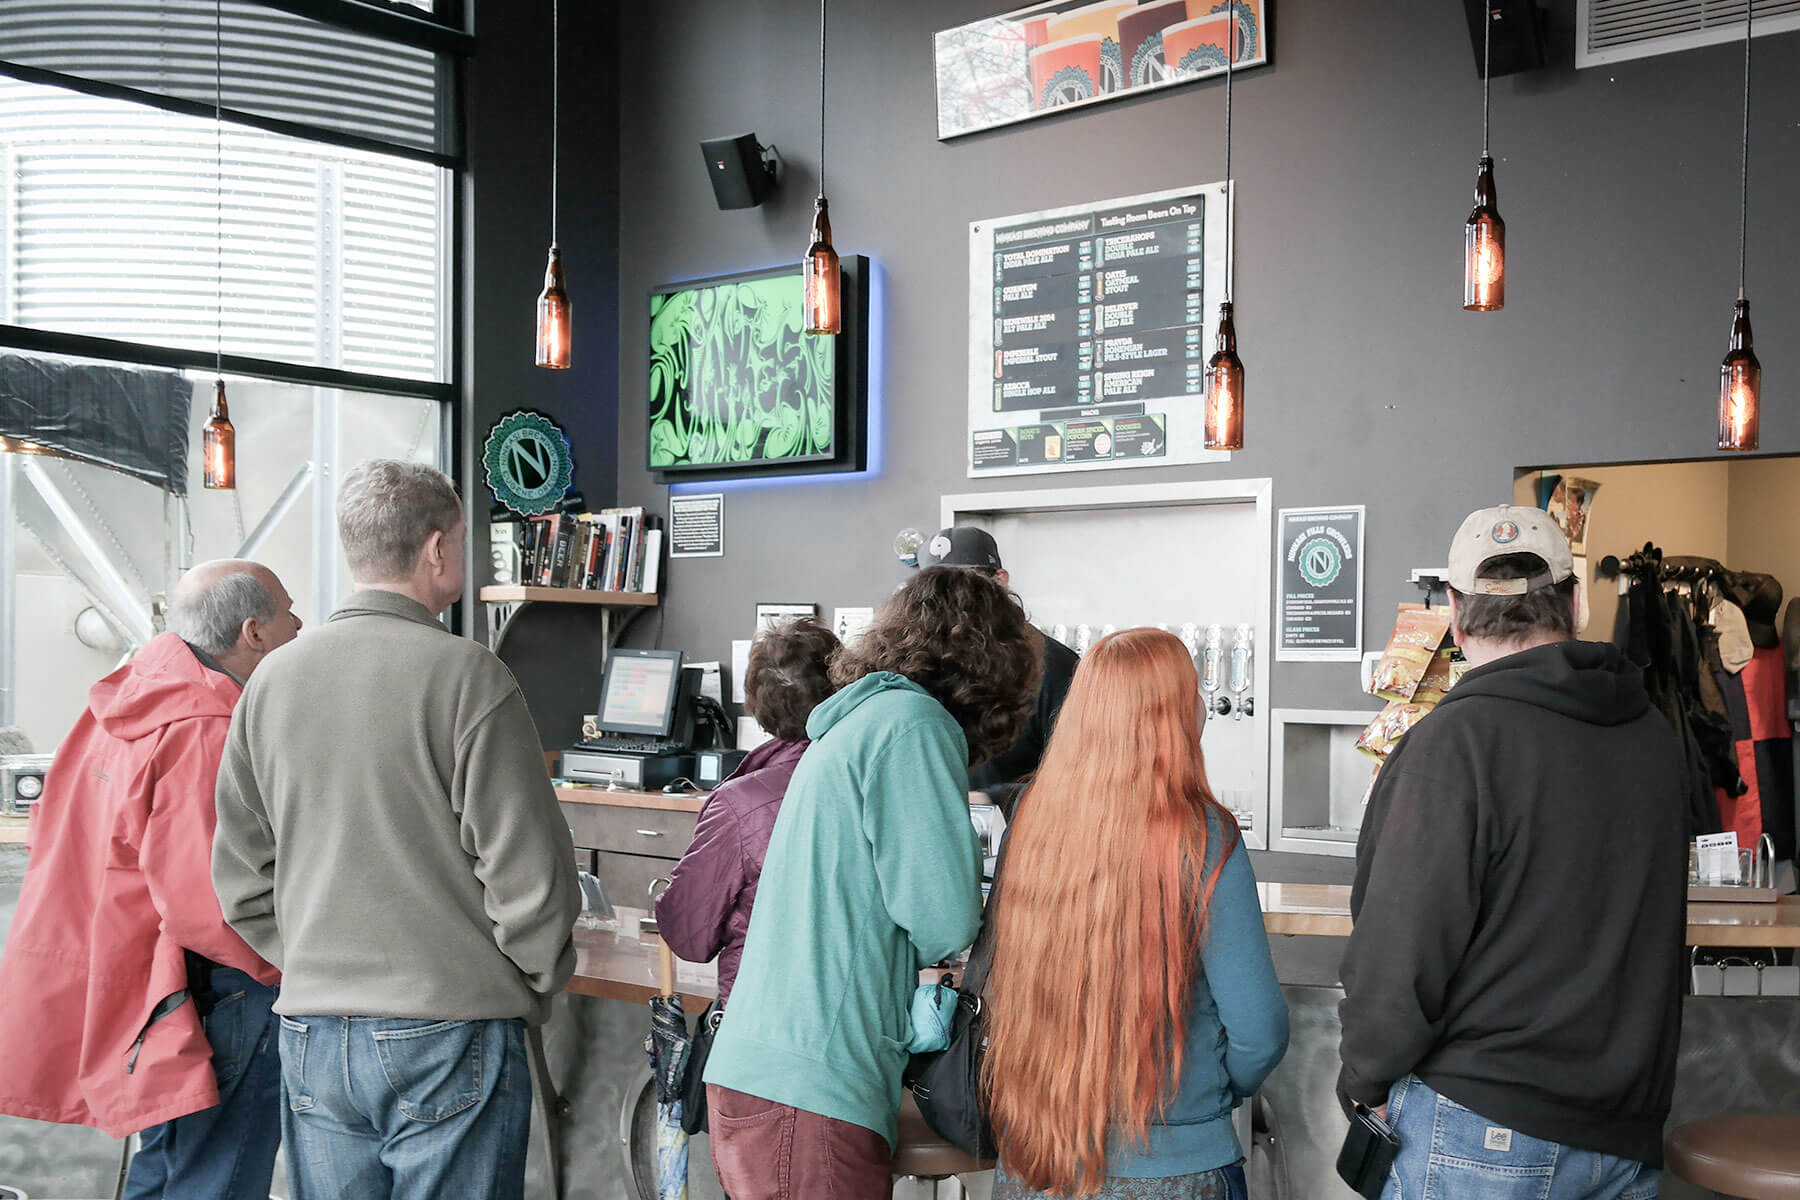 Inside the taproom at Ninkasi Brewing Company in Eugene, Oregon